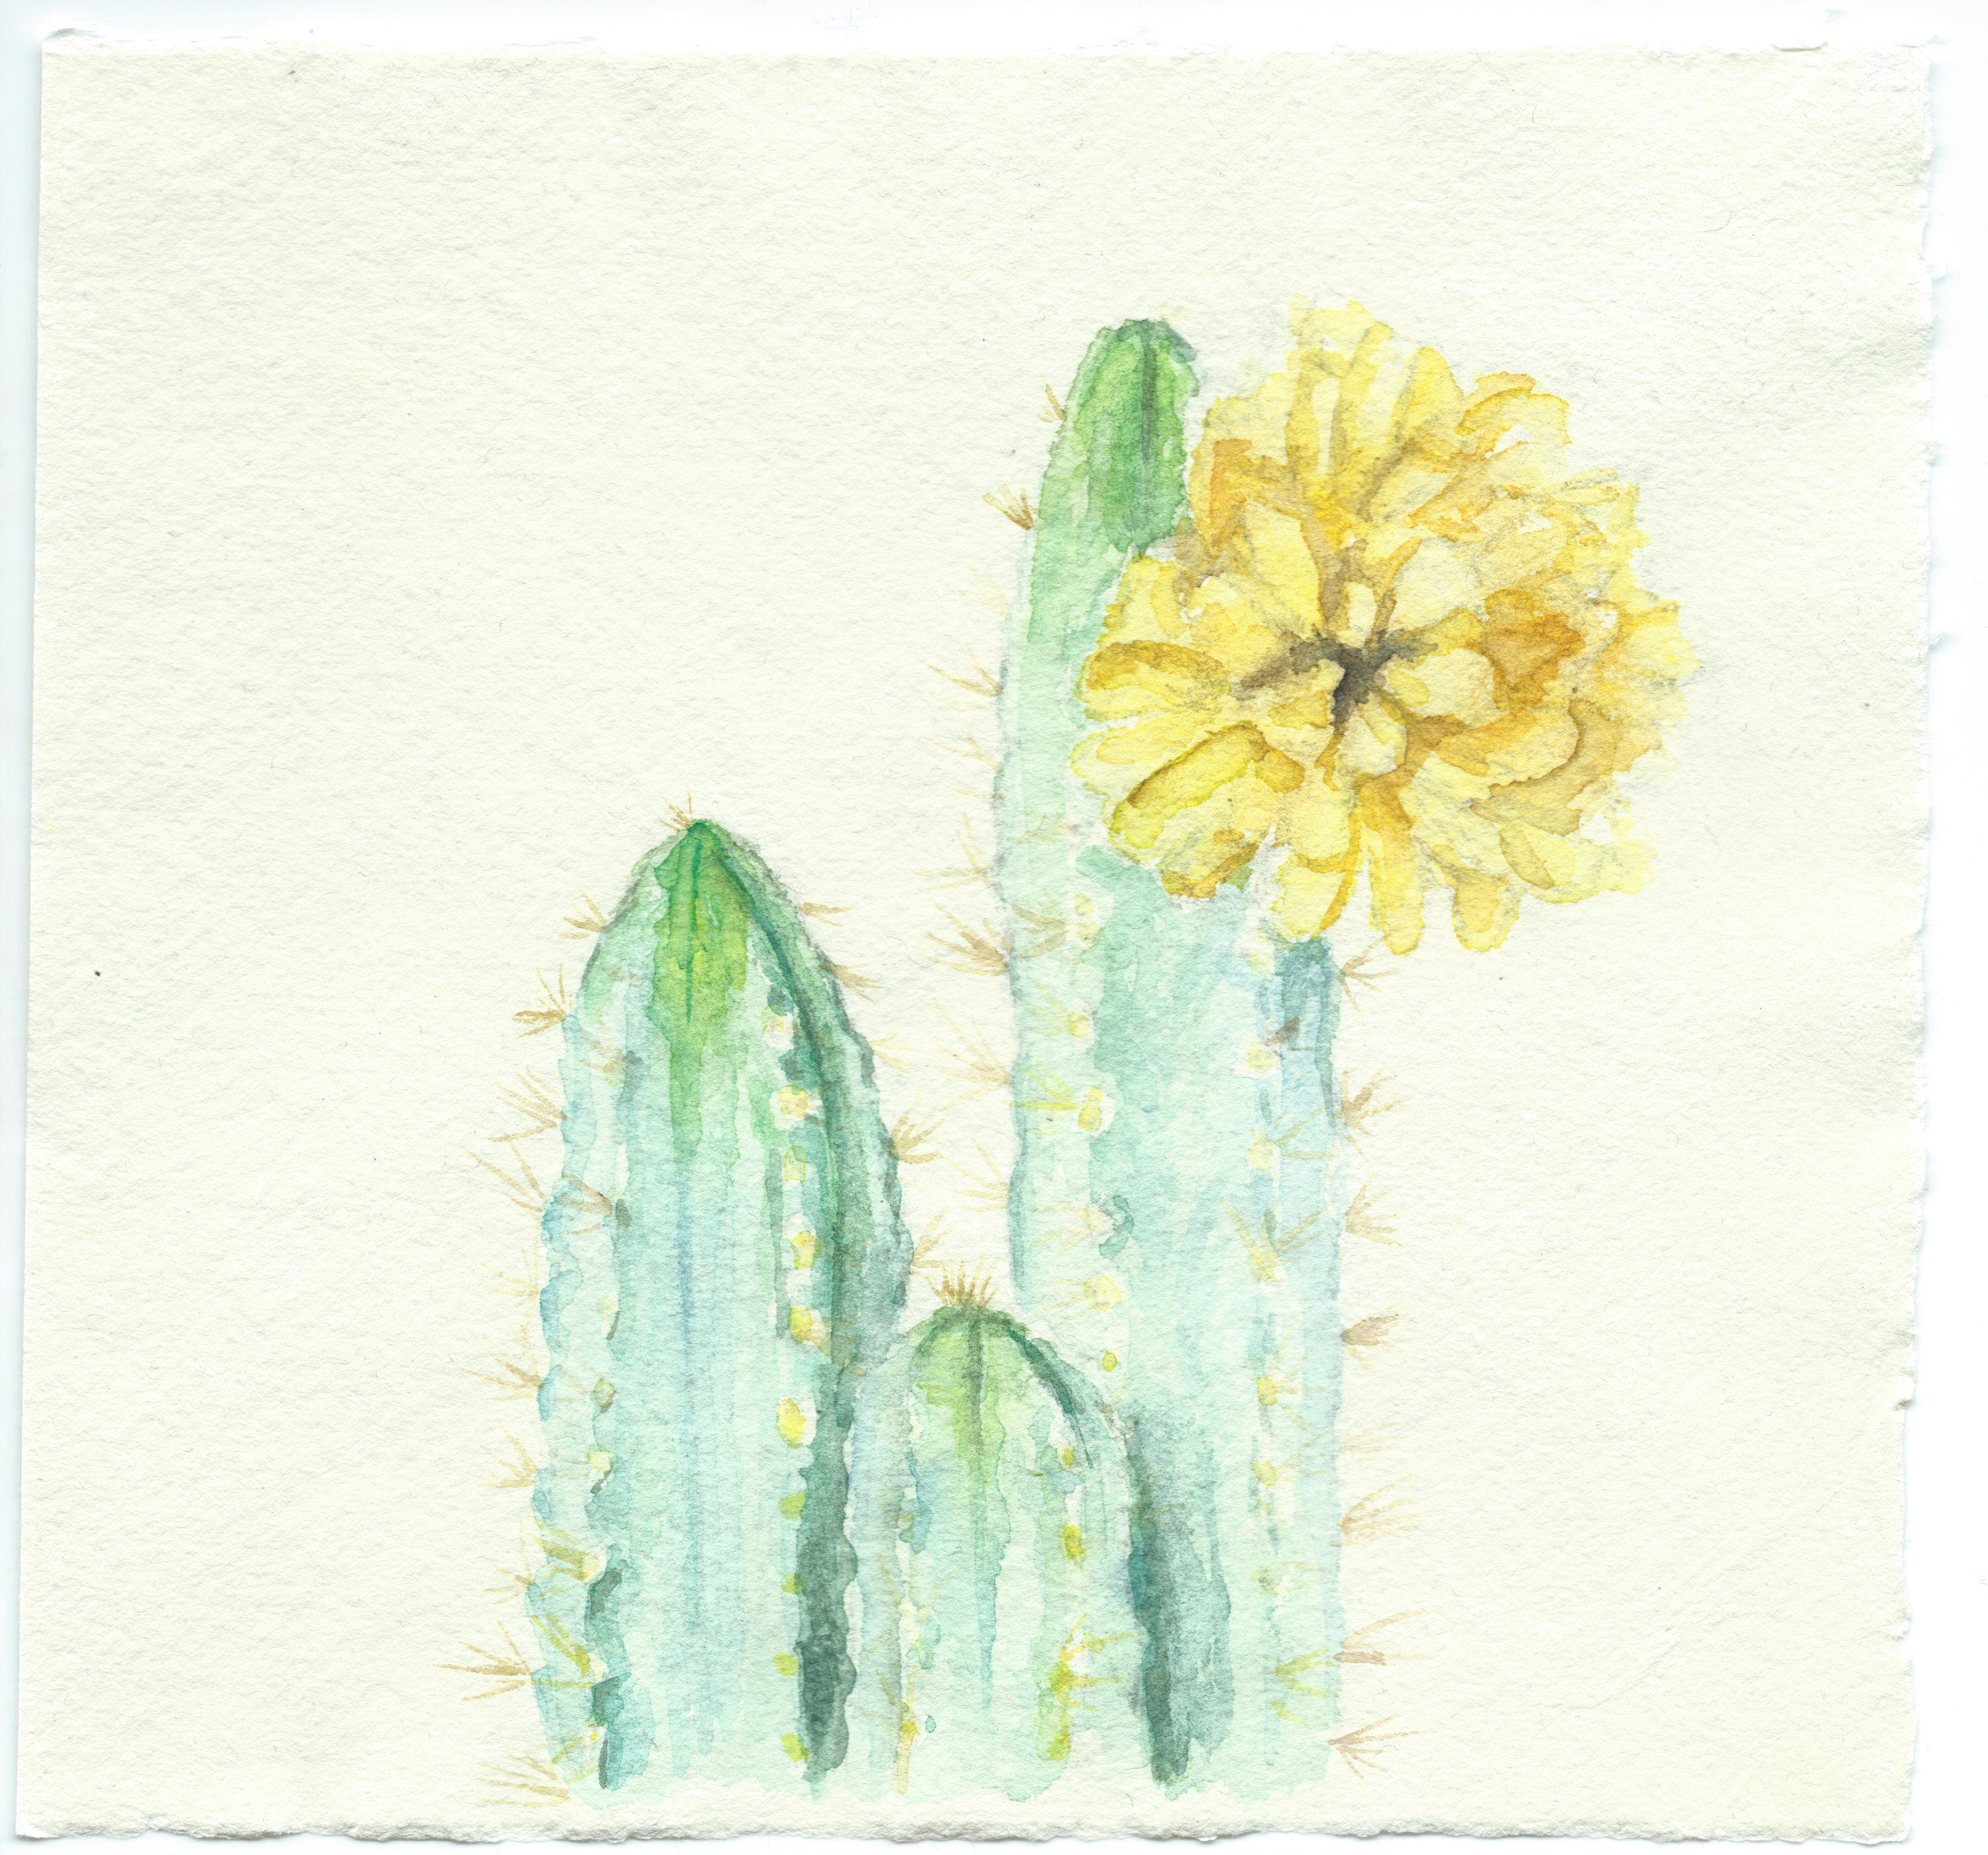 The Fancy Friend Original Cactus With Yellow Flower Etsy